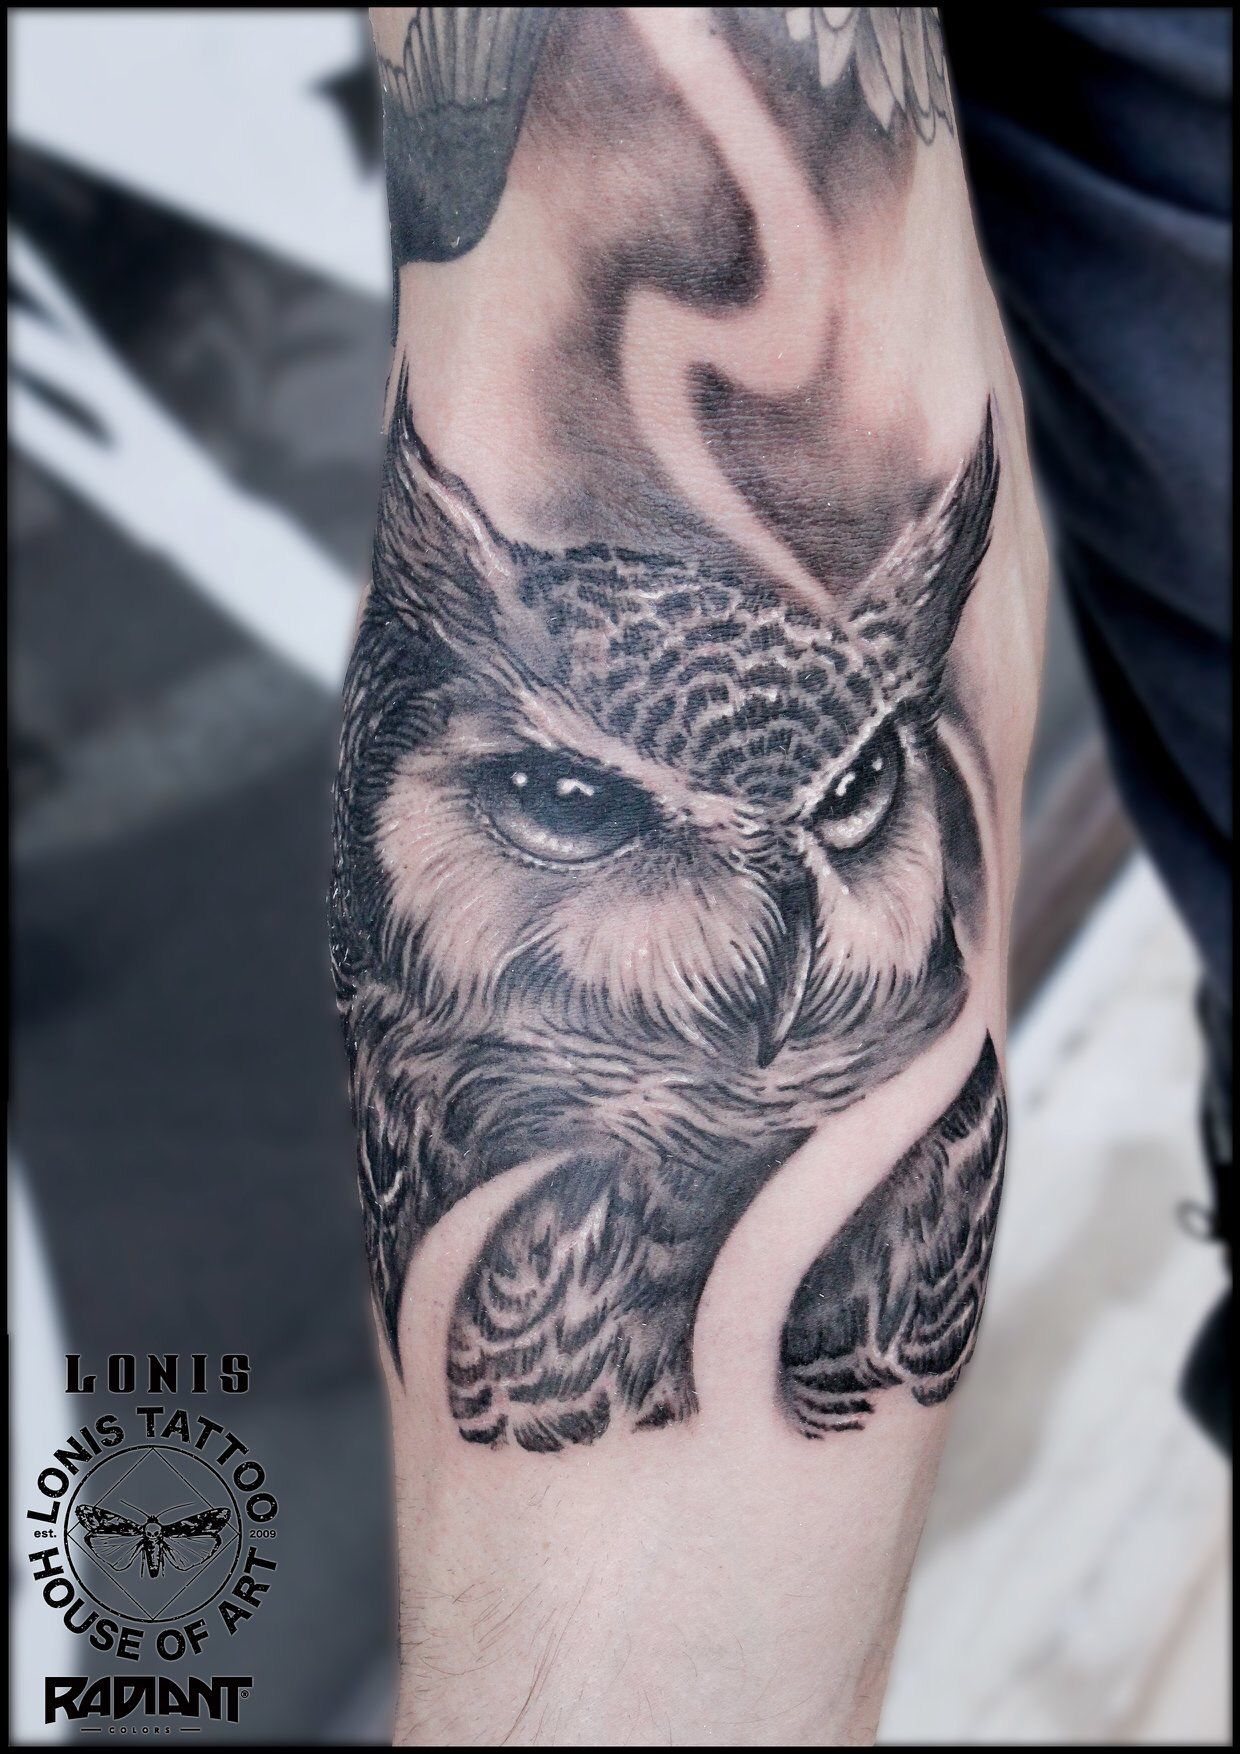 Black and grey realistic owl tattoos by Lonis | Tattoos ...